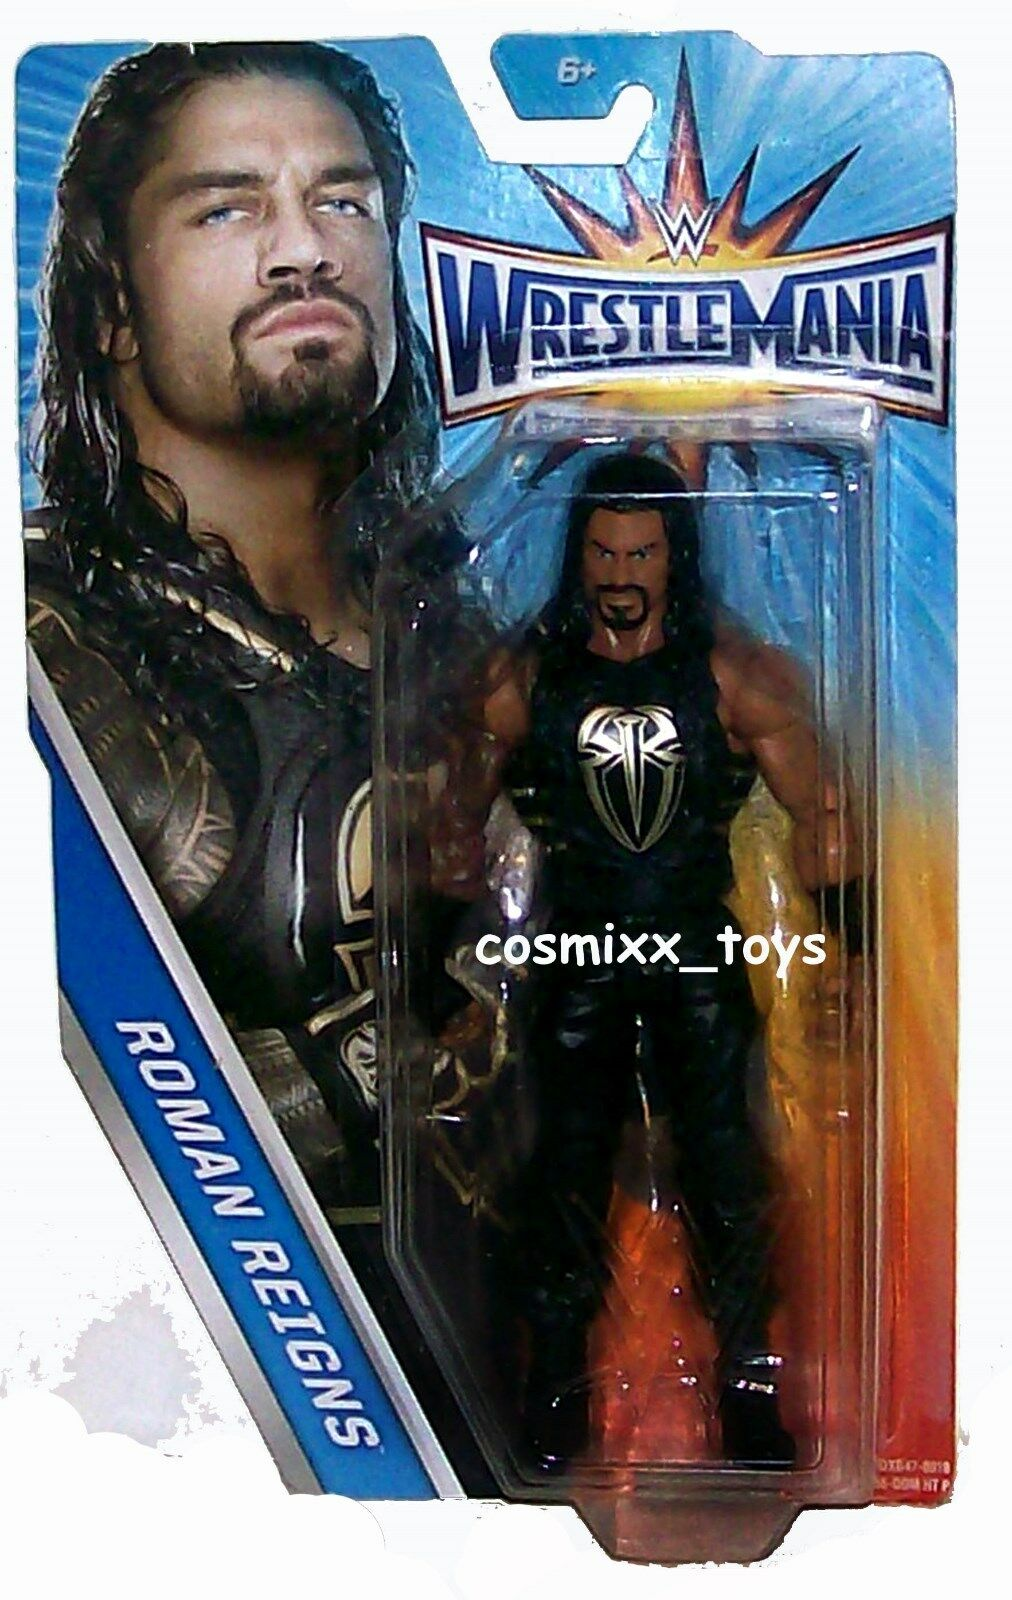 WWE WRESTLING WRESTLEMANIA HERITAGE SERIES THE SHIELD SUPERSTAR ROMAN REIGNS